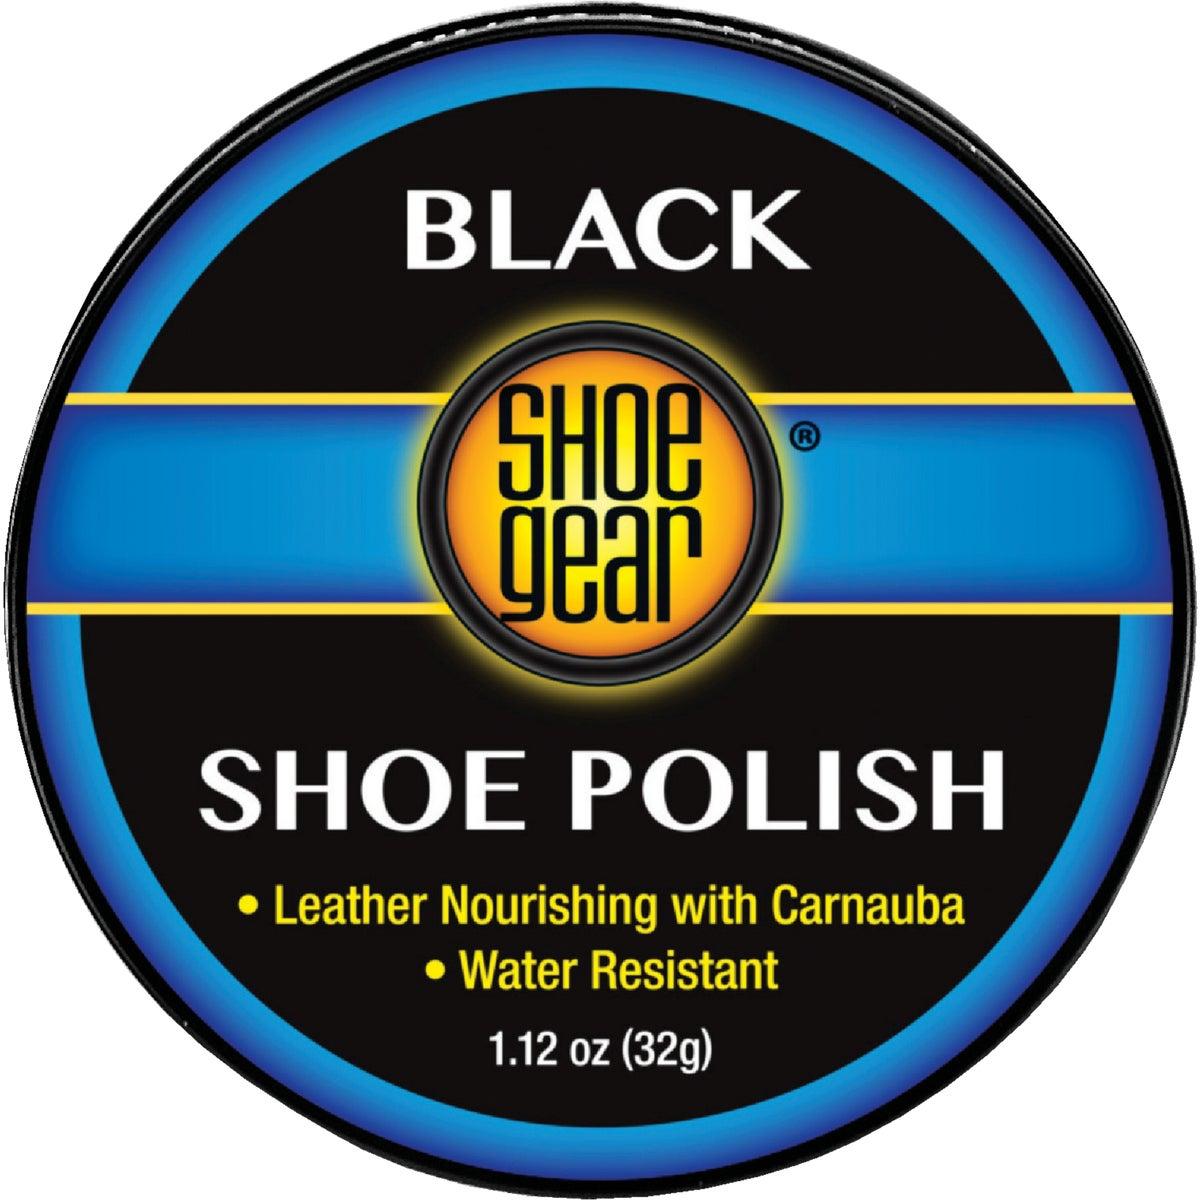 BLACK SHOE POLISH - 10111 by Sc Johnson